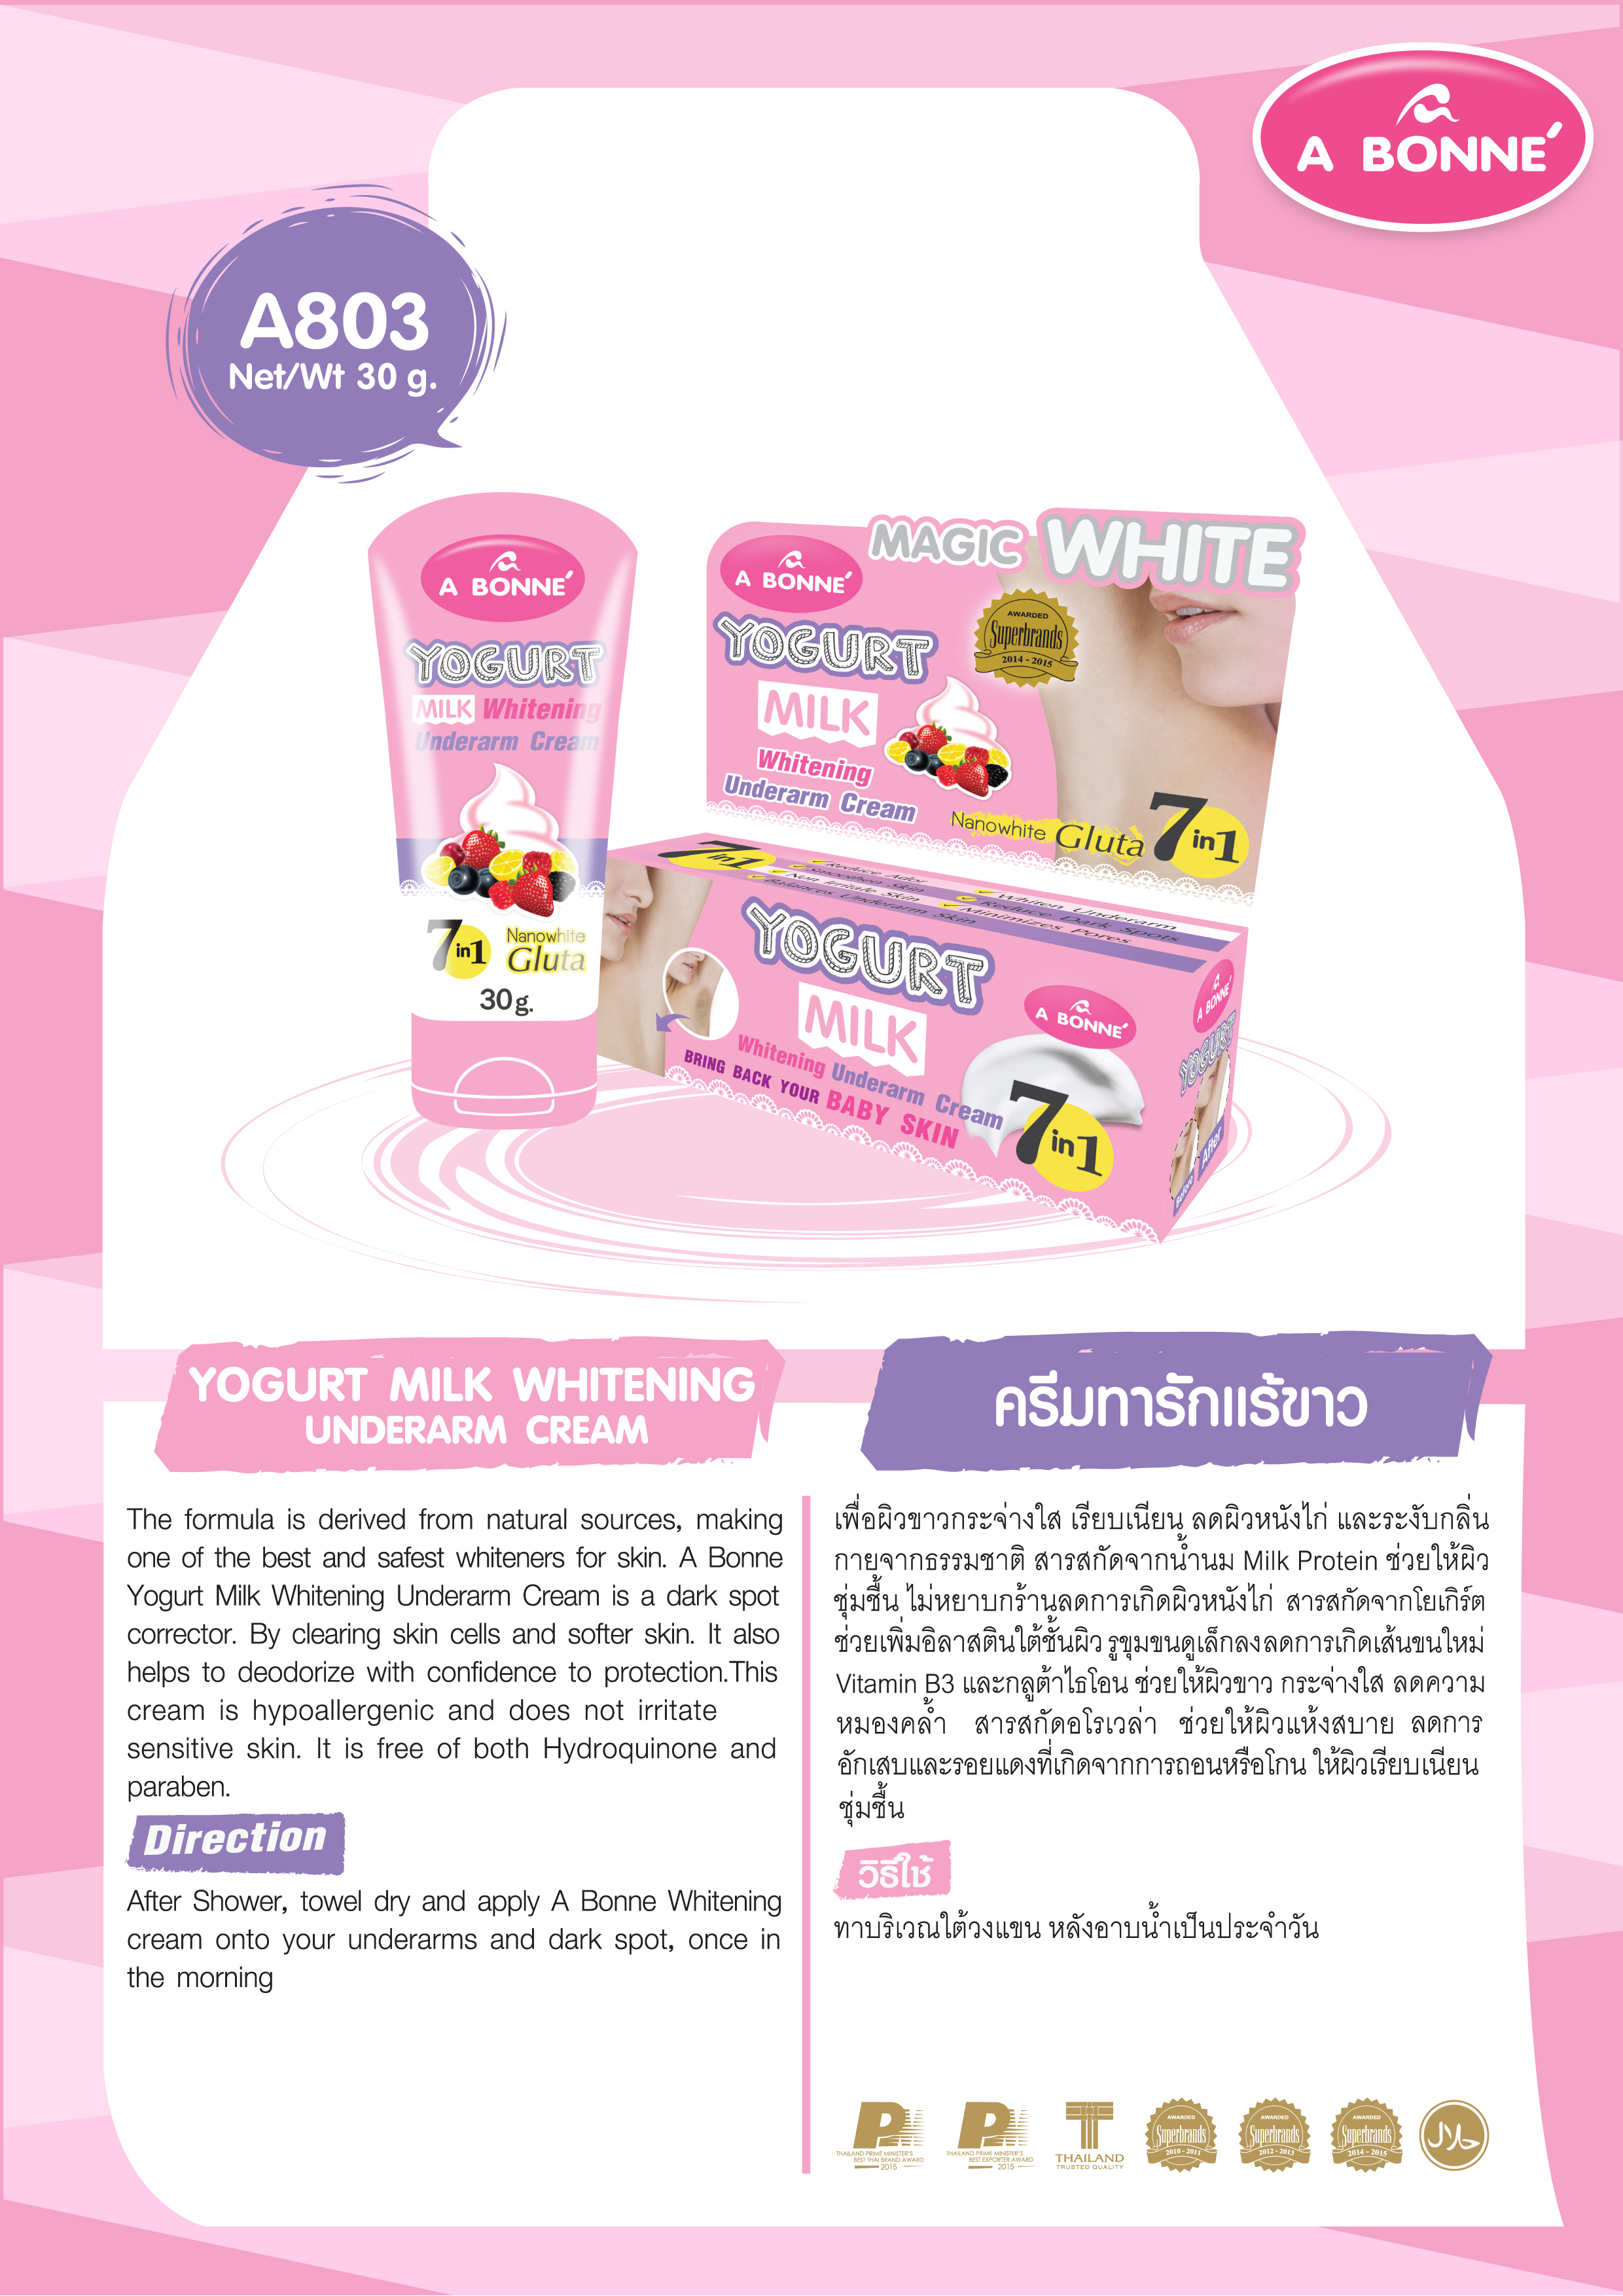 Magic Whitening Underarm Cream